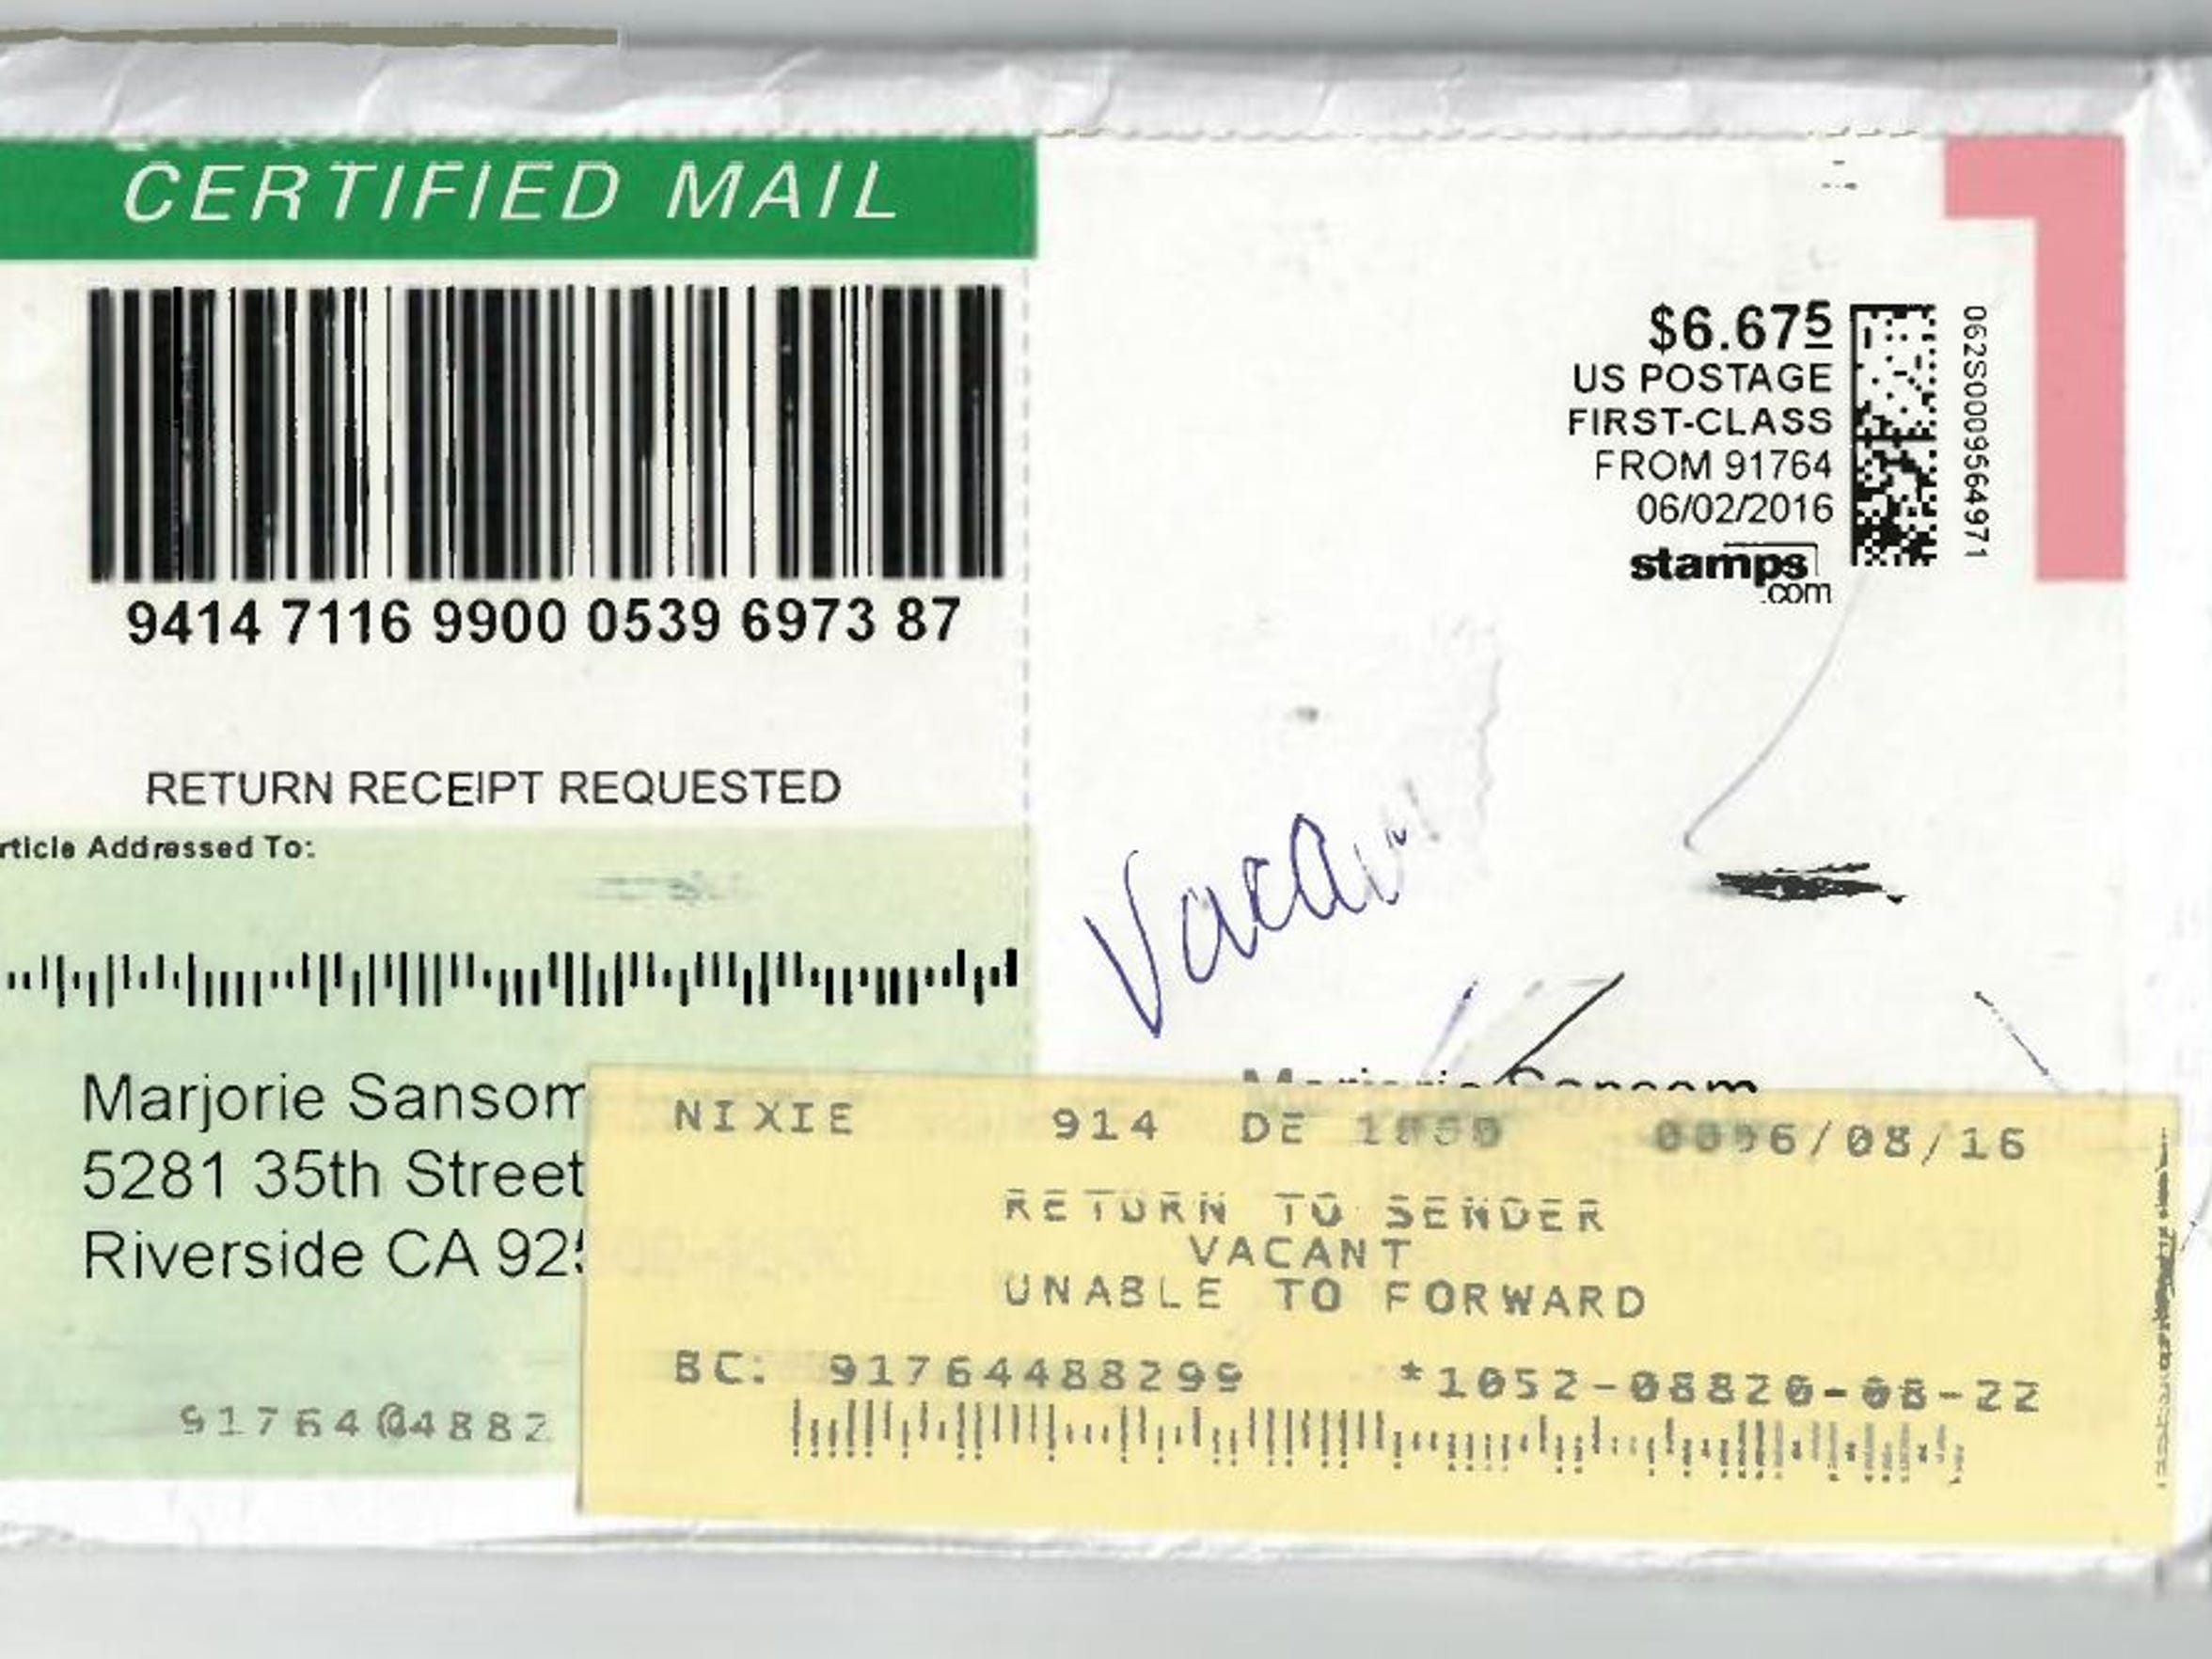 A screenshot of an envelope shows how Coachella's legal notices to Marjorie Sansom were returned undelivered. Coachella City Hall presumed it had the correct address of Sansom, even though the Postal Service told them twice that they were mailing documents to a vacant house.